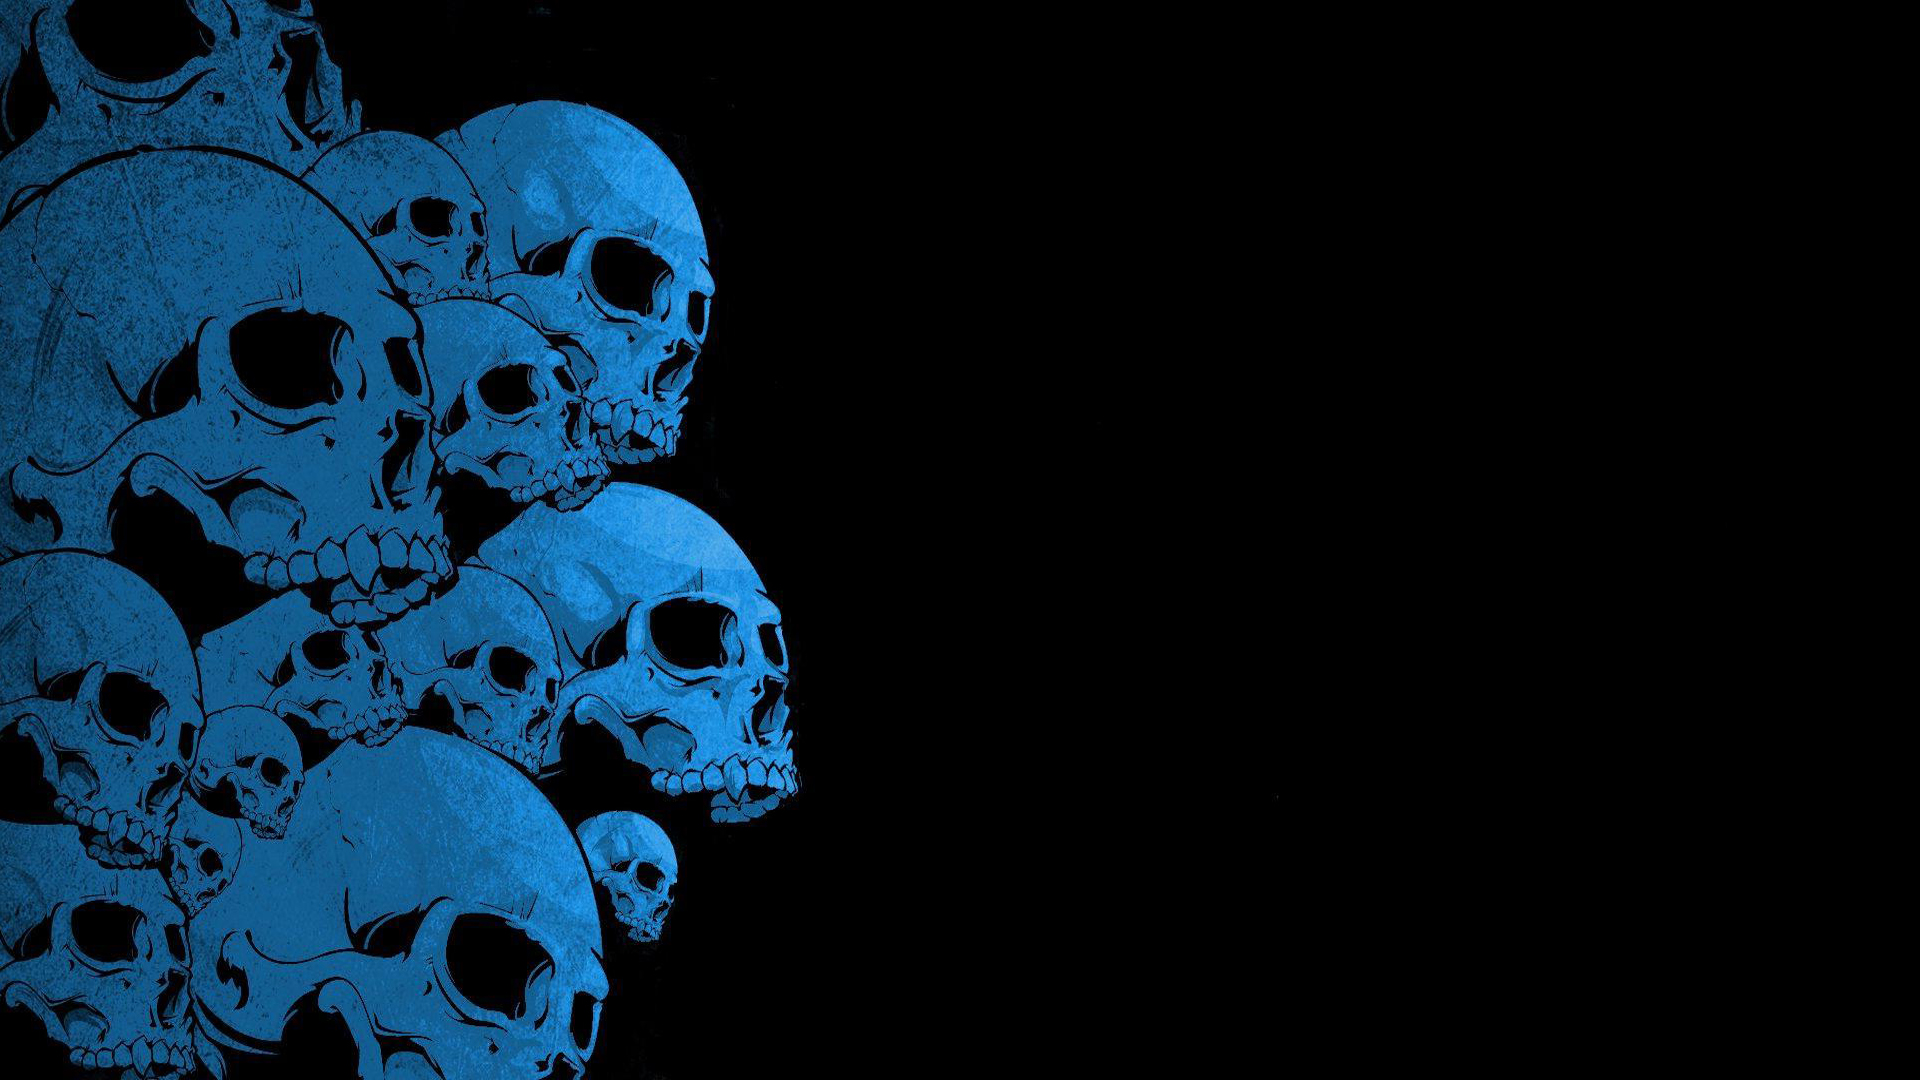 Wall of Skulls Wallpapers Wall of Skulls Myspace Backgrounds Wall of 1920x1080